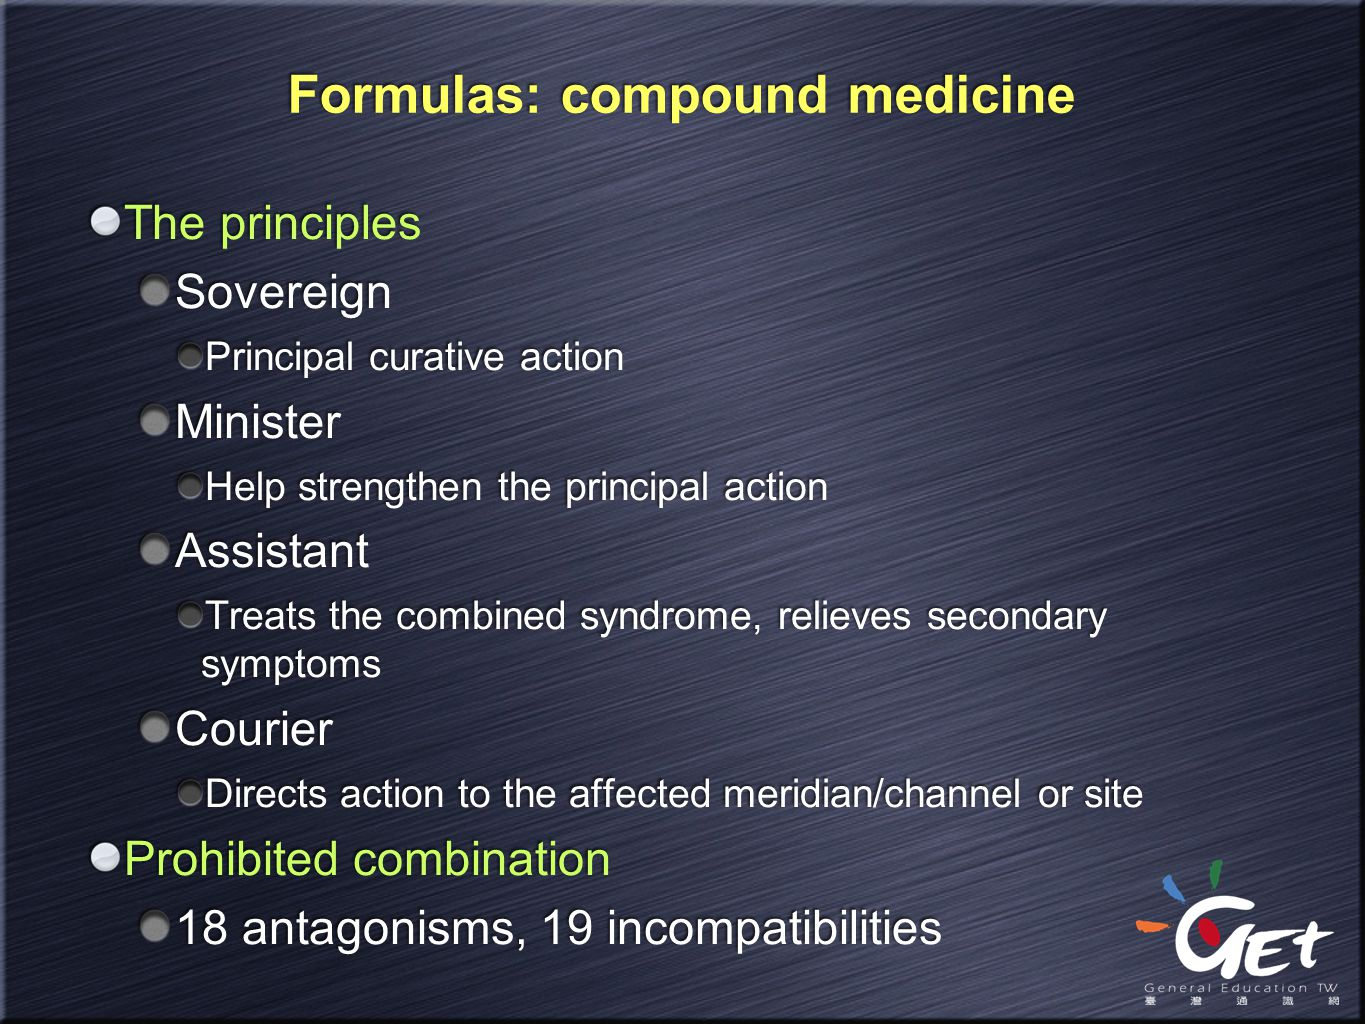 Formulas: compound medicine